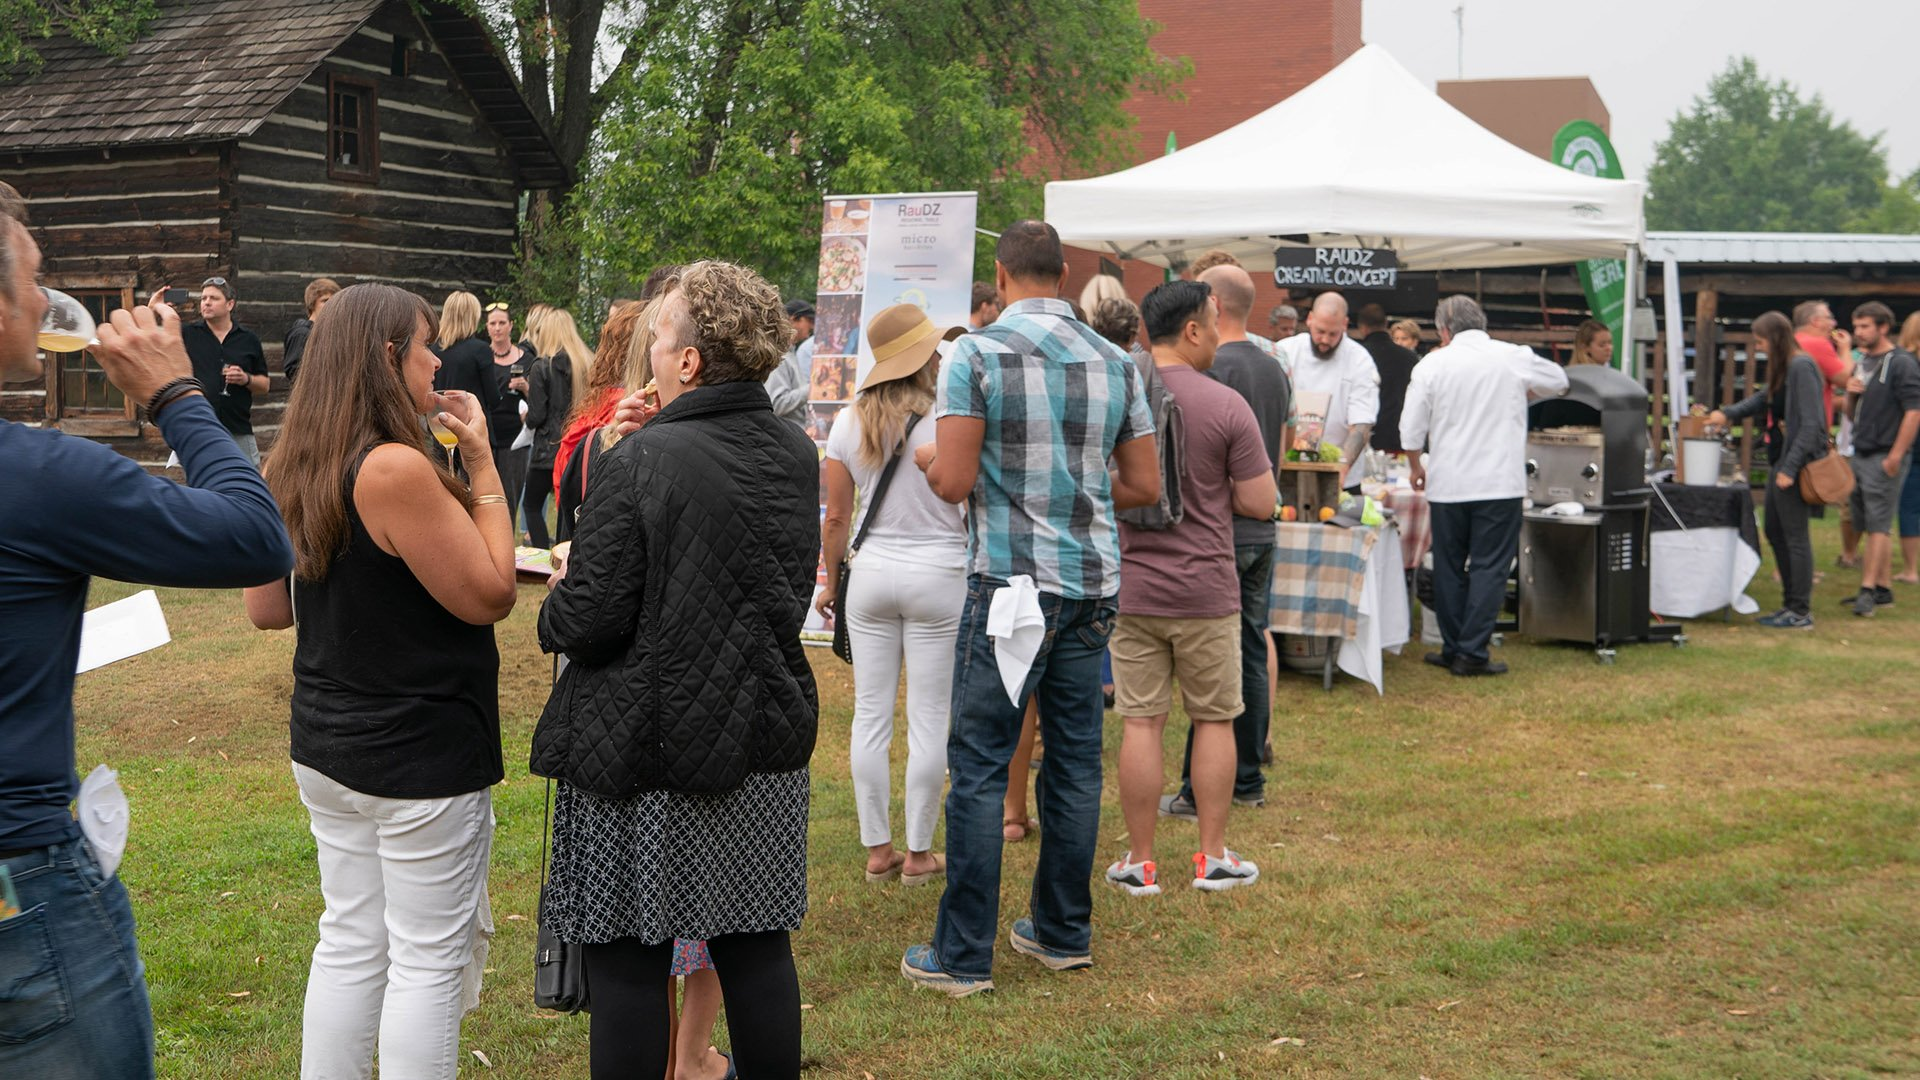 http://spatulamedia.ca/wp-content/uploads/2019/05/feast-of-fields-lineup-for-raudz.jpg